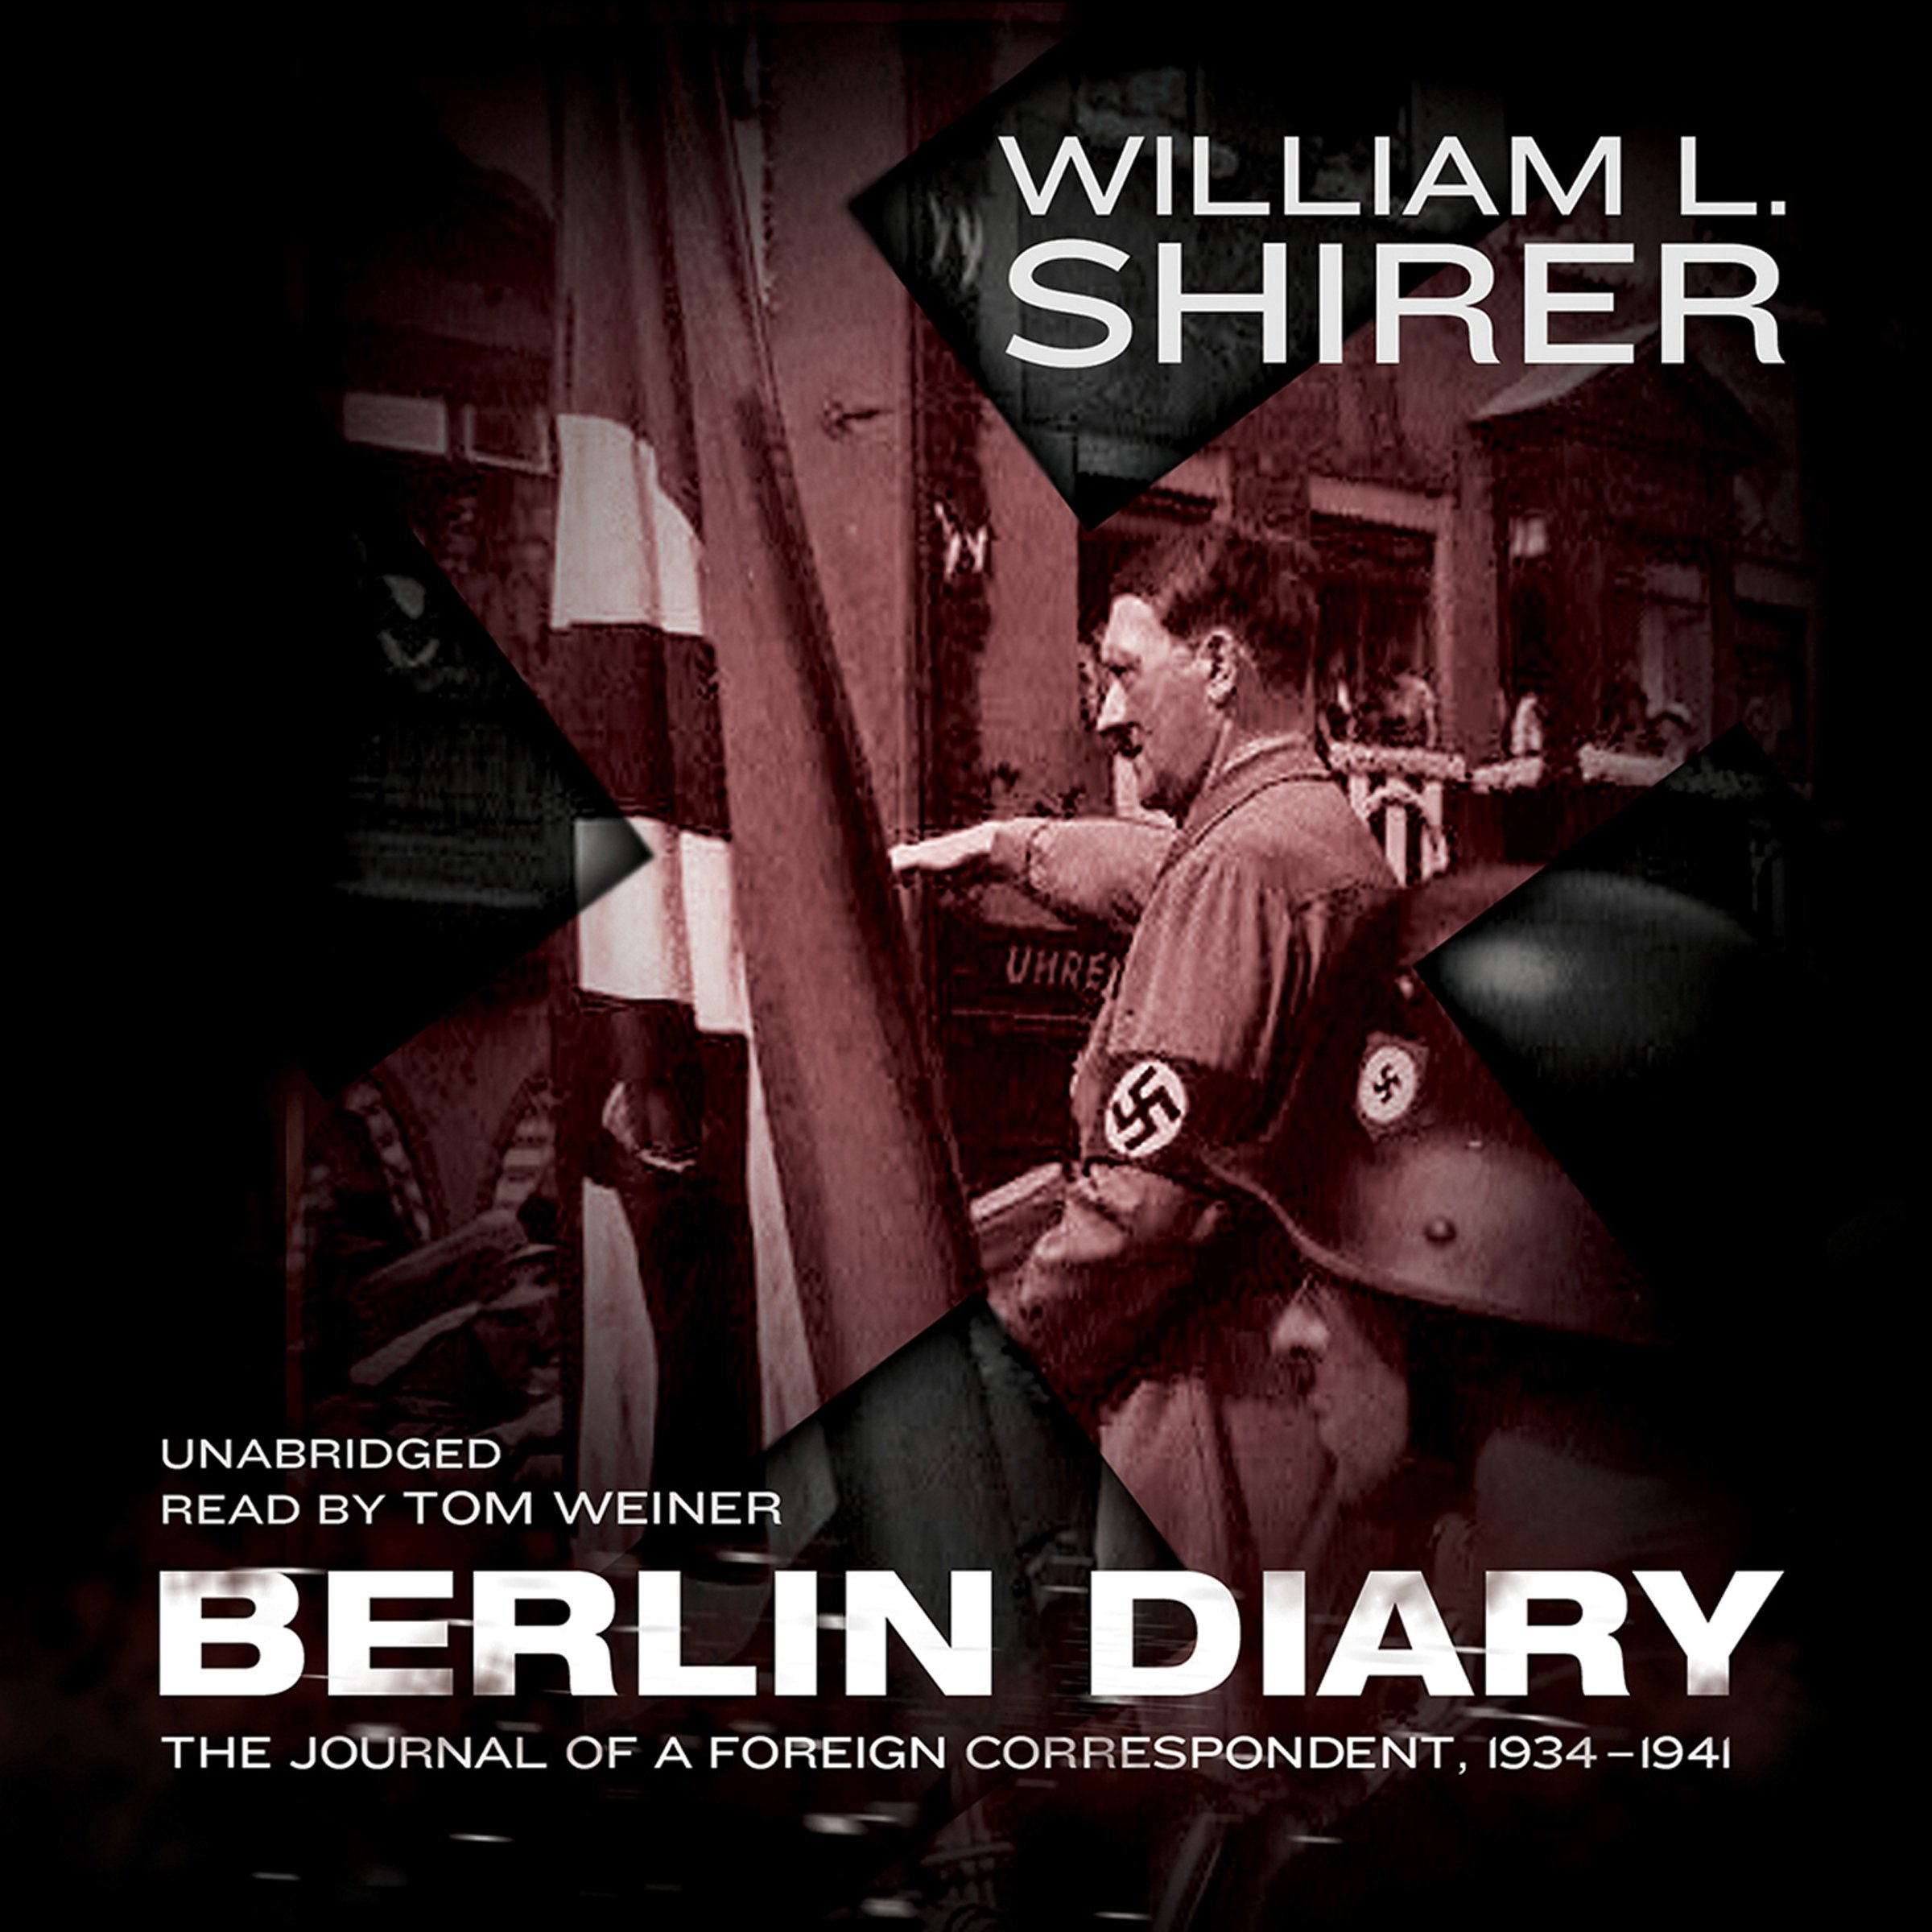 Berlin Diary: The Journal of a Foreign Correspondent, 1934–1941